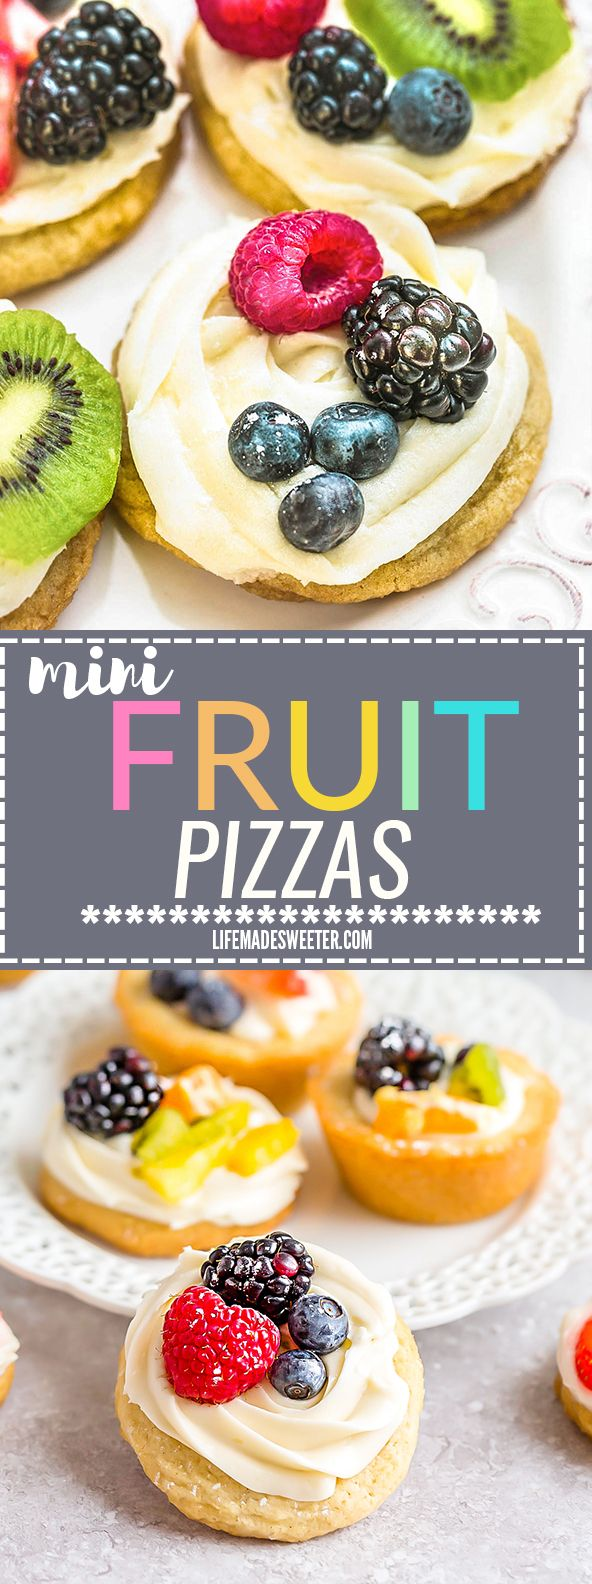 This recipe is for Mini Fruit Pizzas - a classic dessert made using homemade soft sugar cookies topped with fresh fruit.  Perfect for spring or summer barbecues, potlucks, showers, and parties. Best of all, no dough chilling required and easy to customize!  Use a mix of fresh strawberries, blueberries, blackberries, raspberries, kiwi, mandarin oranges or pineapples!